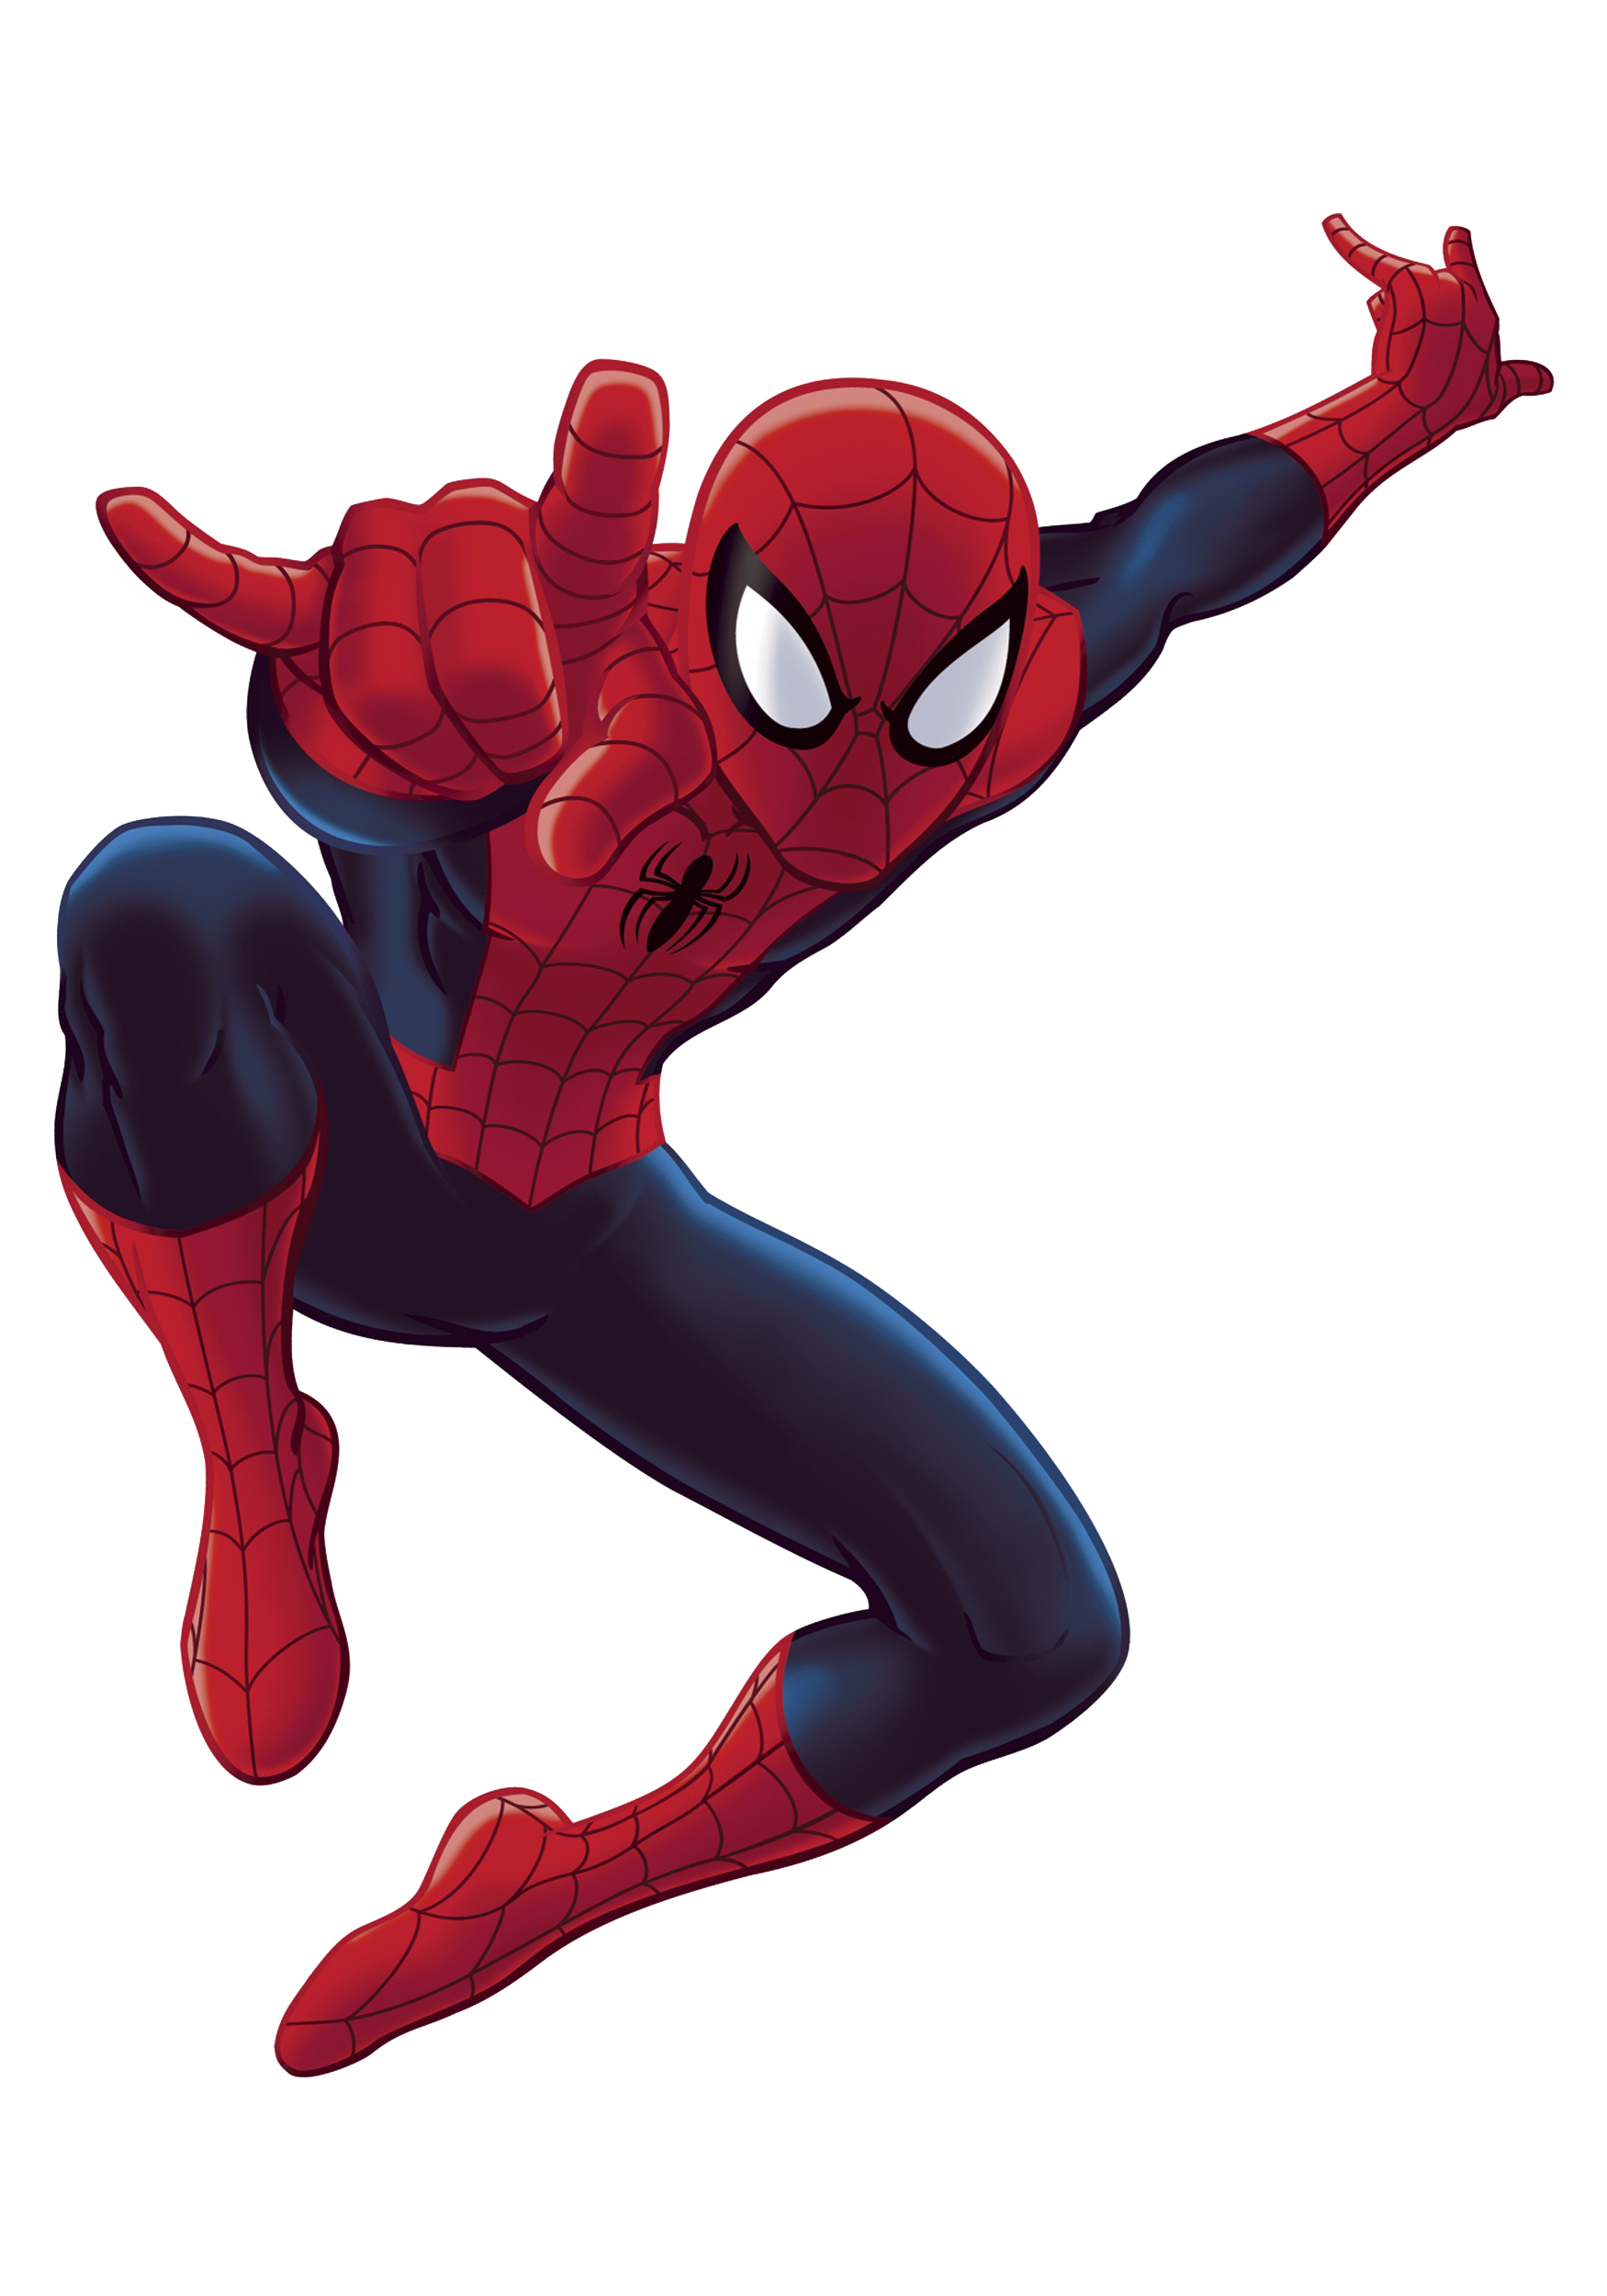 Spiderman background png. Logo clipart at getdrawings